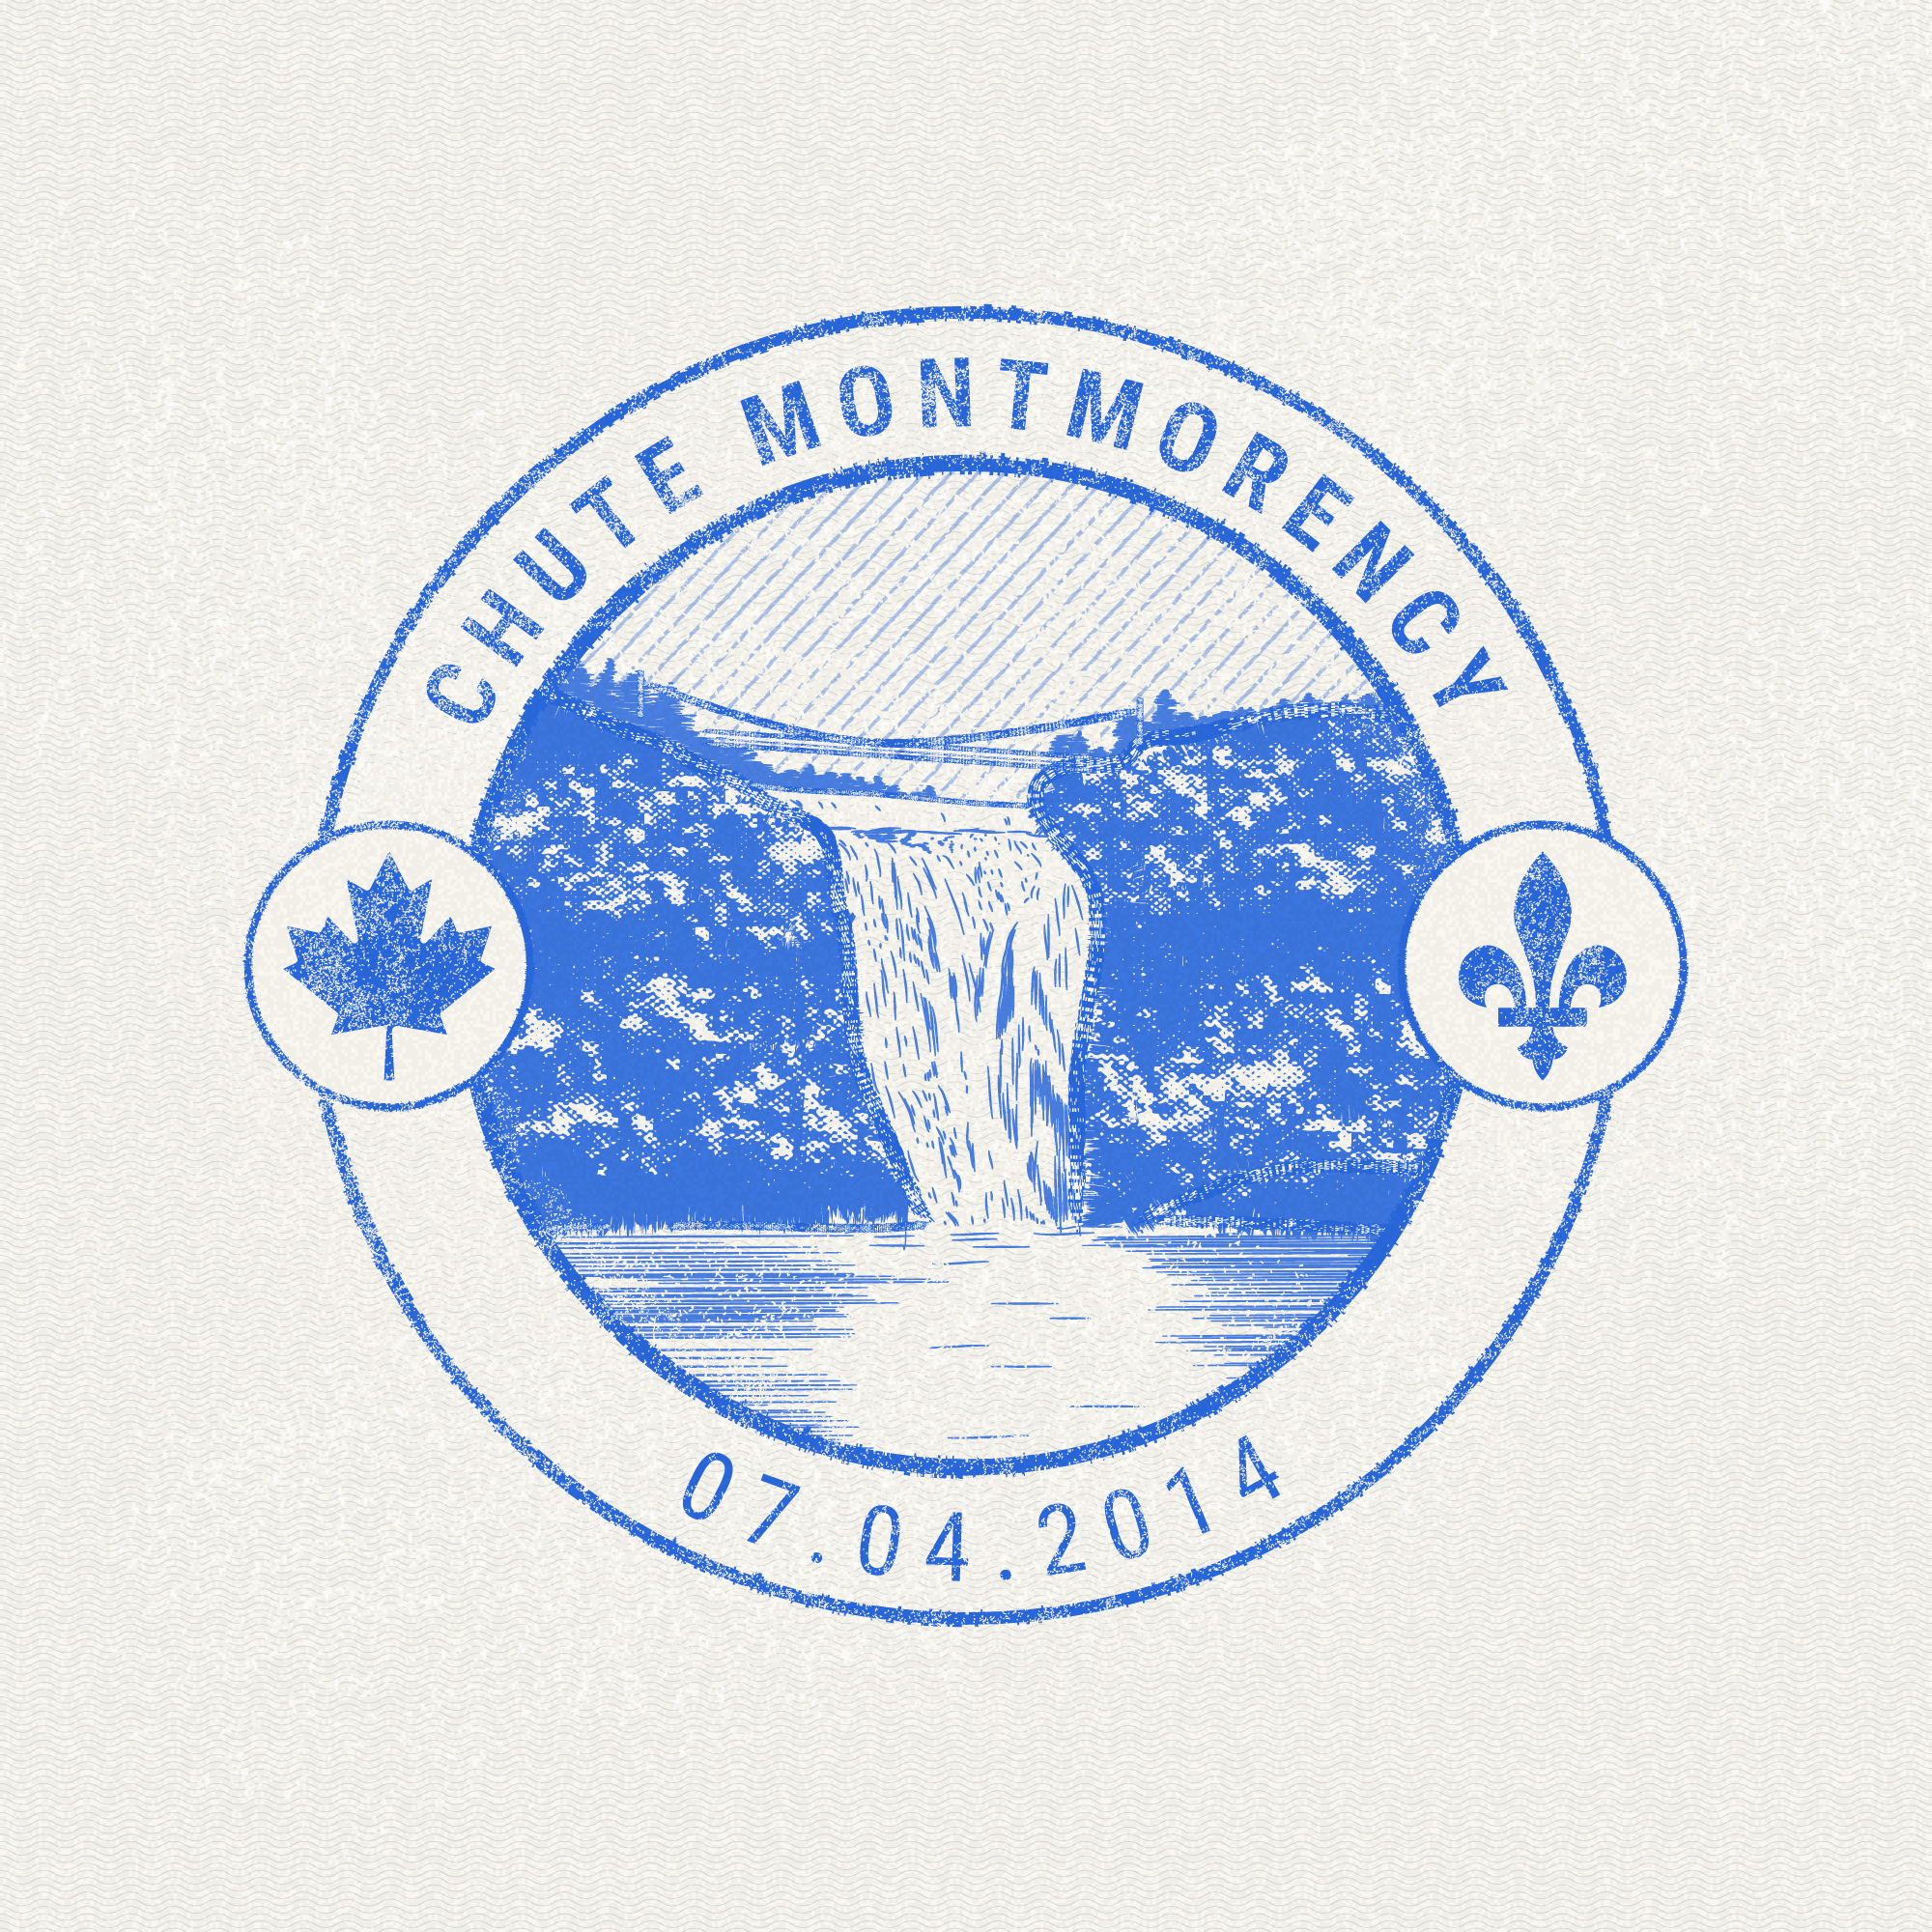 Chute Montmorency, Quebec passport stamp